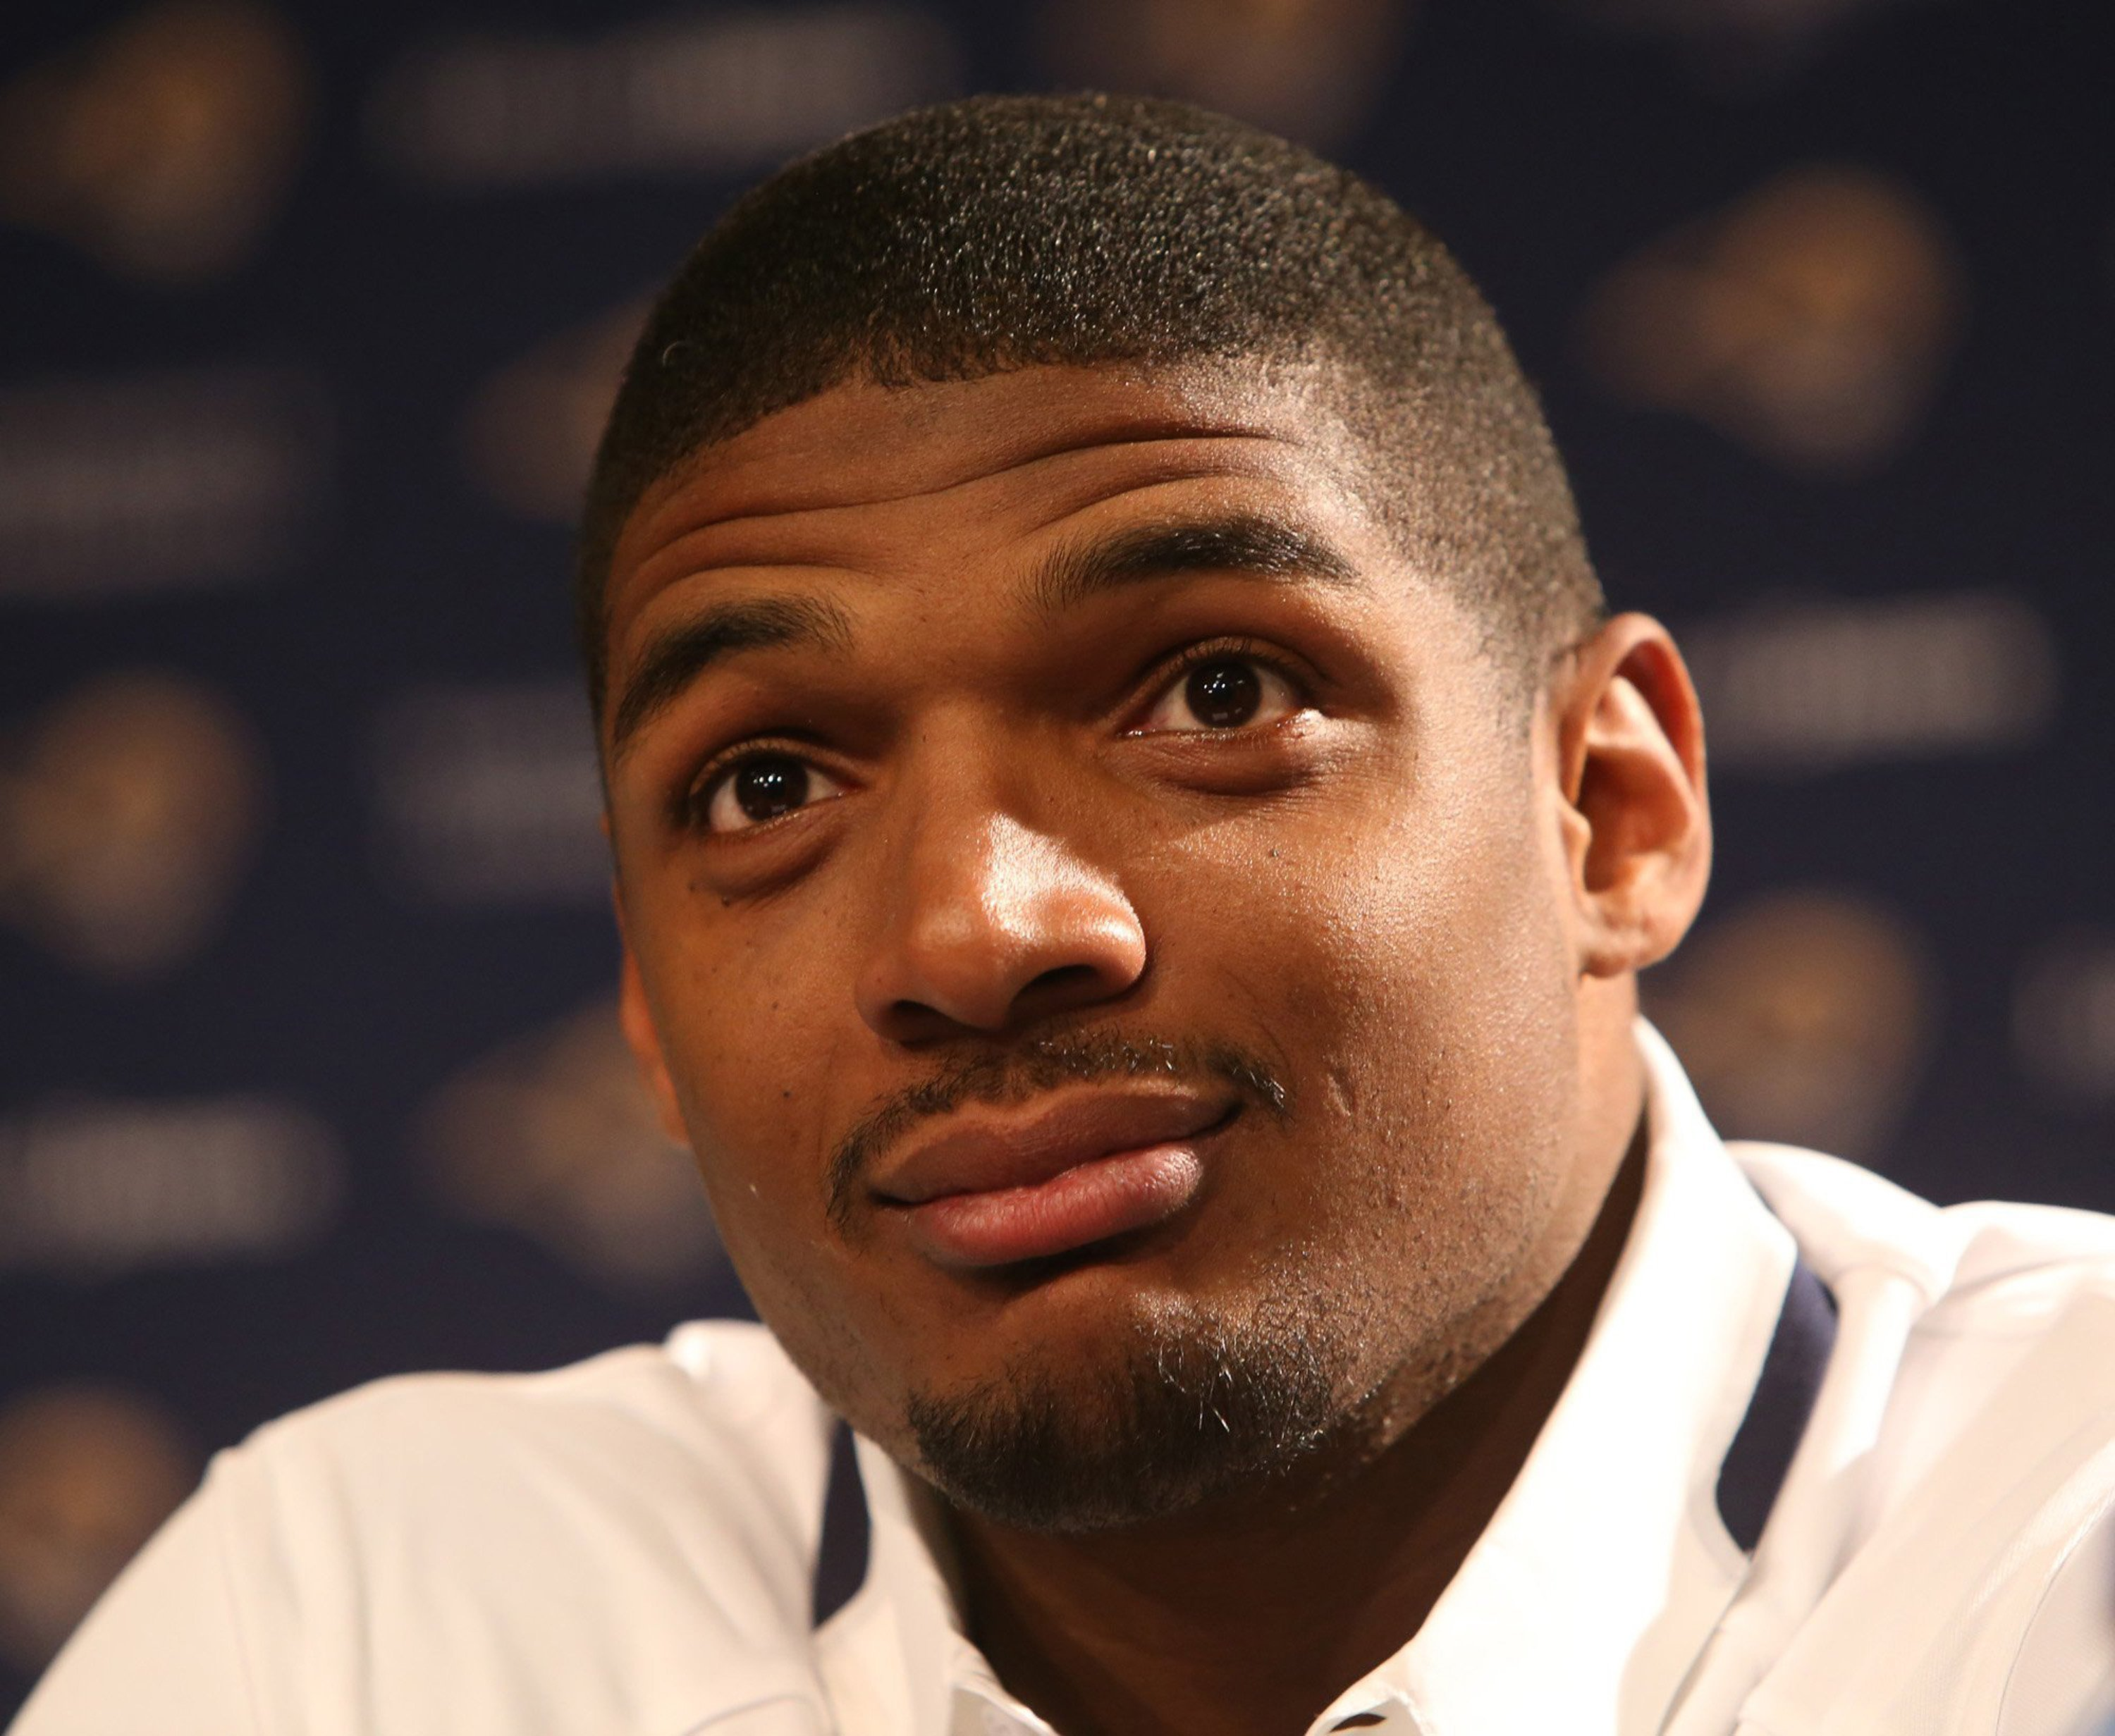 St. Louis Rams defensive end Michael Sam attends an introductory press conference at Rams Park in Earth City, Mo. on May 13, 2014.